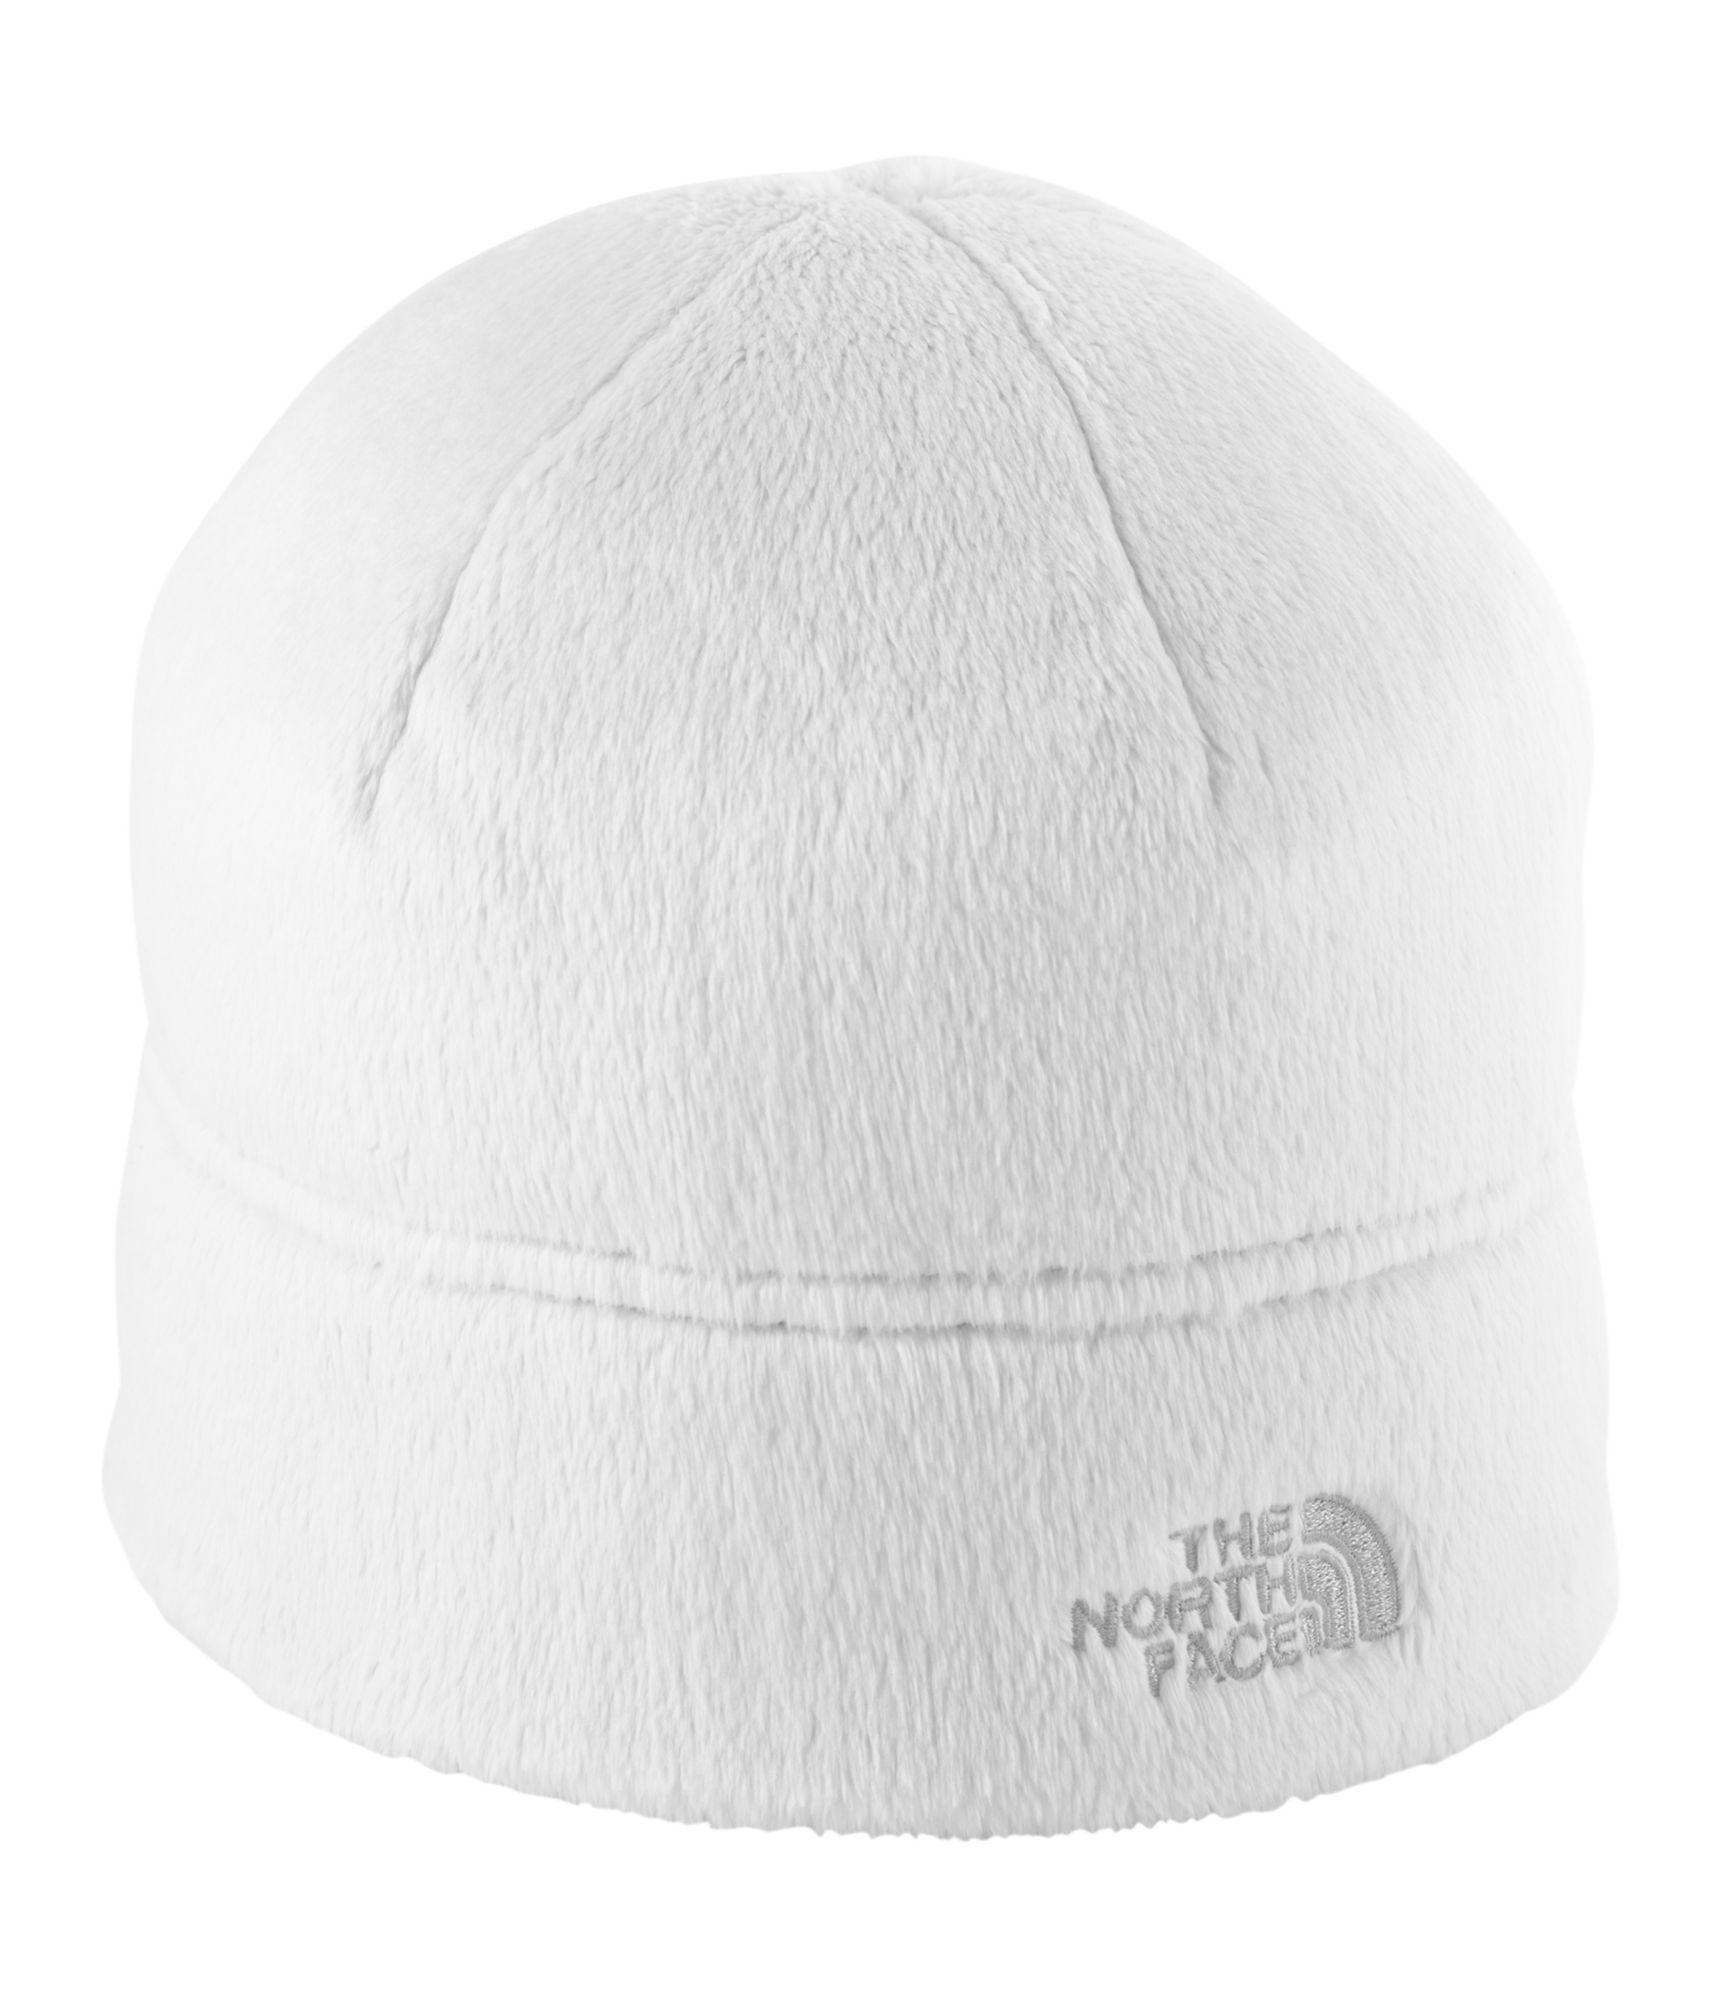 ba7bf4ec391 Lyst - The North Face Denali Thermal Beanie in White